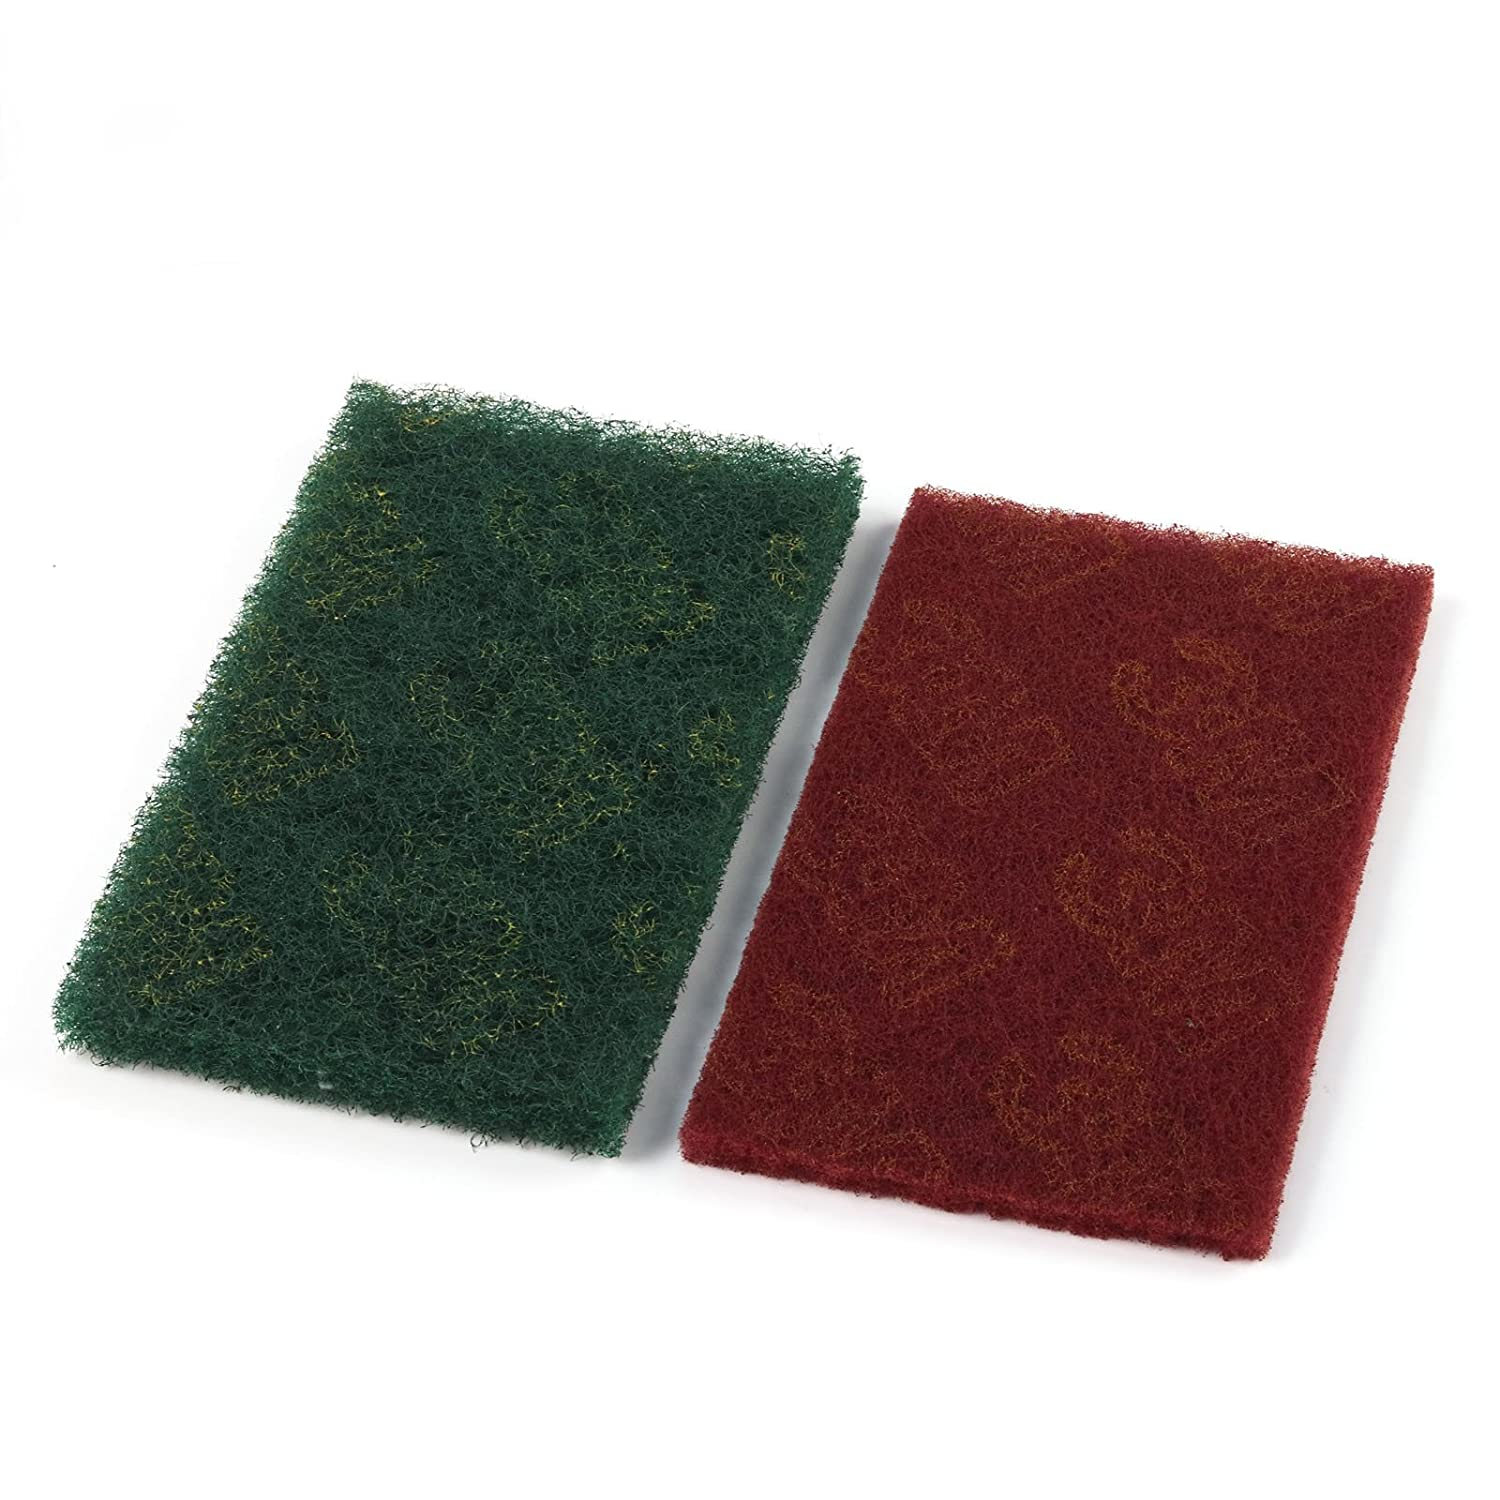 Sponge Scouring Pads Scrub Polishing Cloth For Sink Dish Home Kitchen Cleaning Red 20Pcs